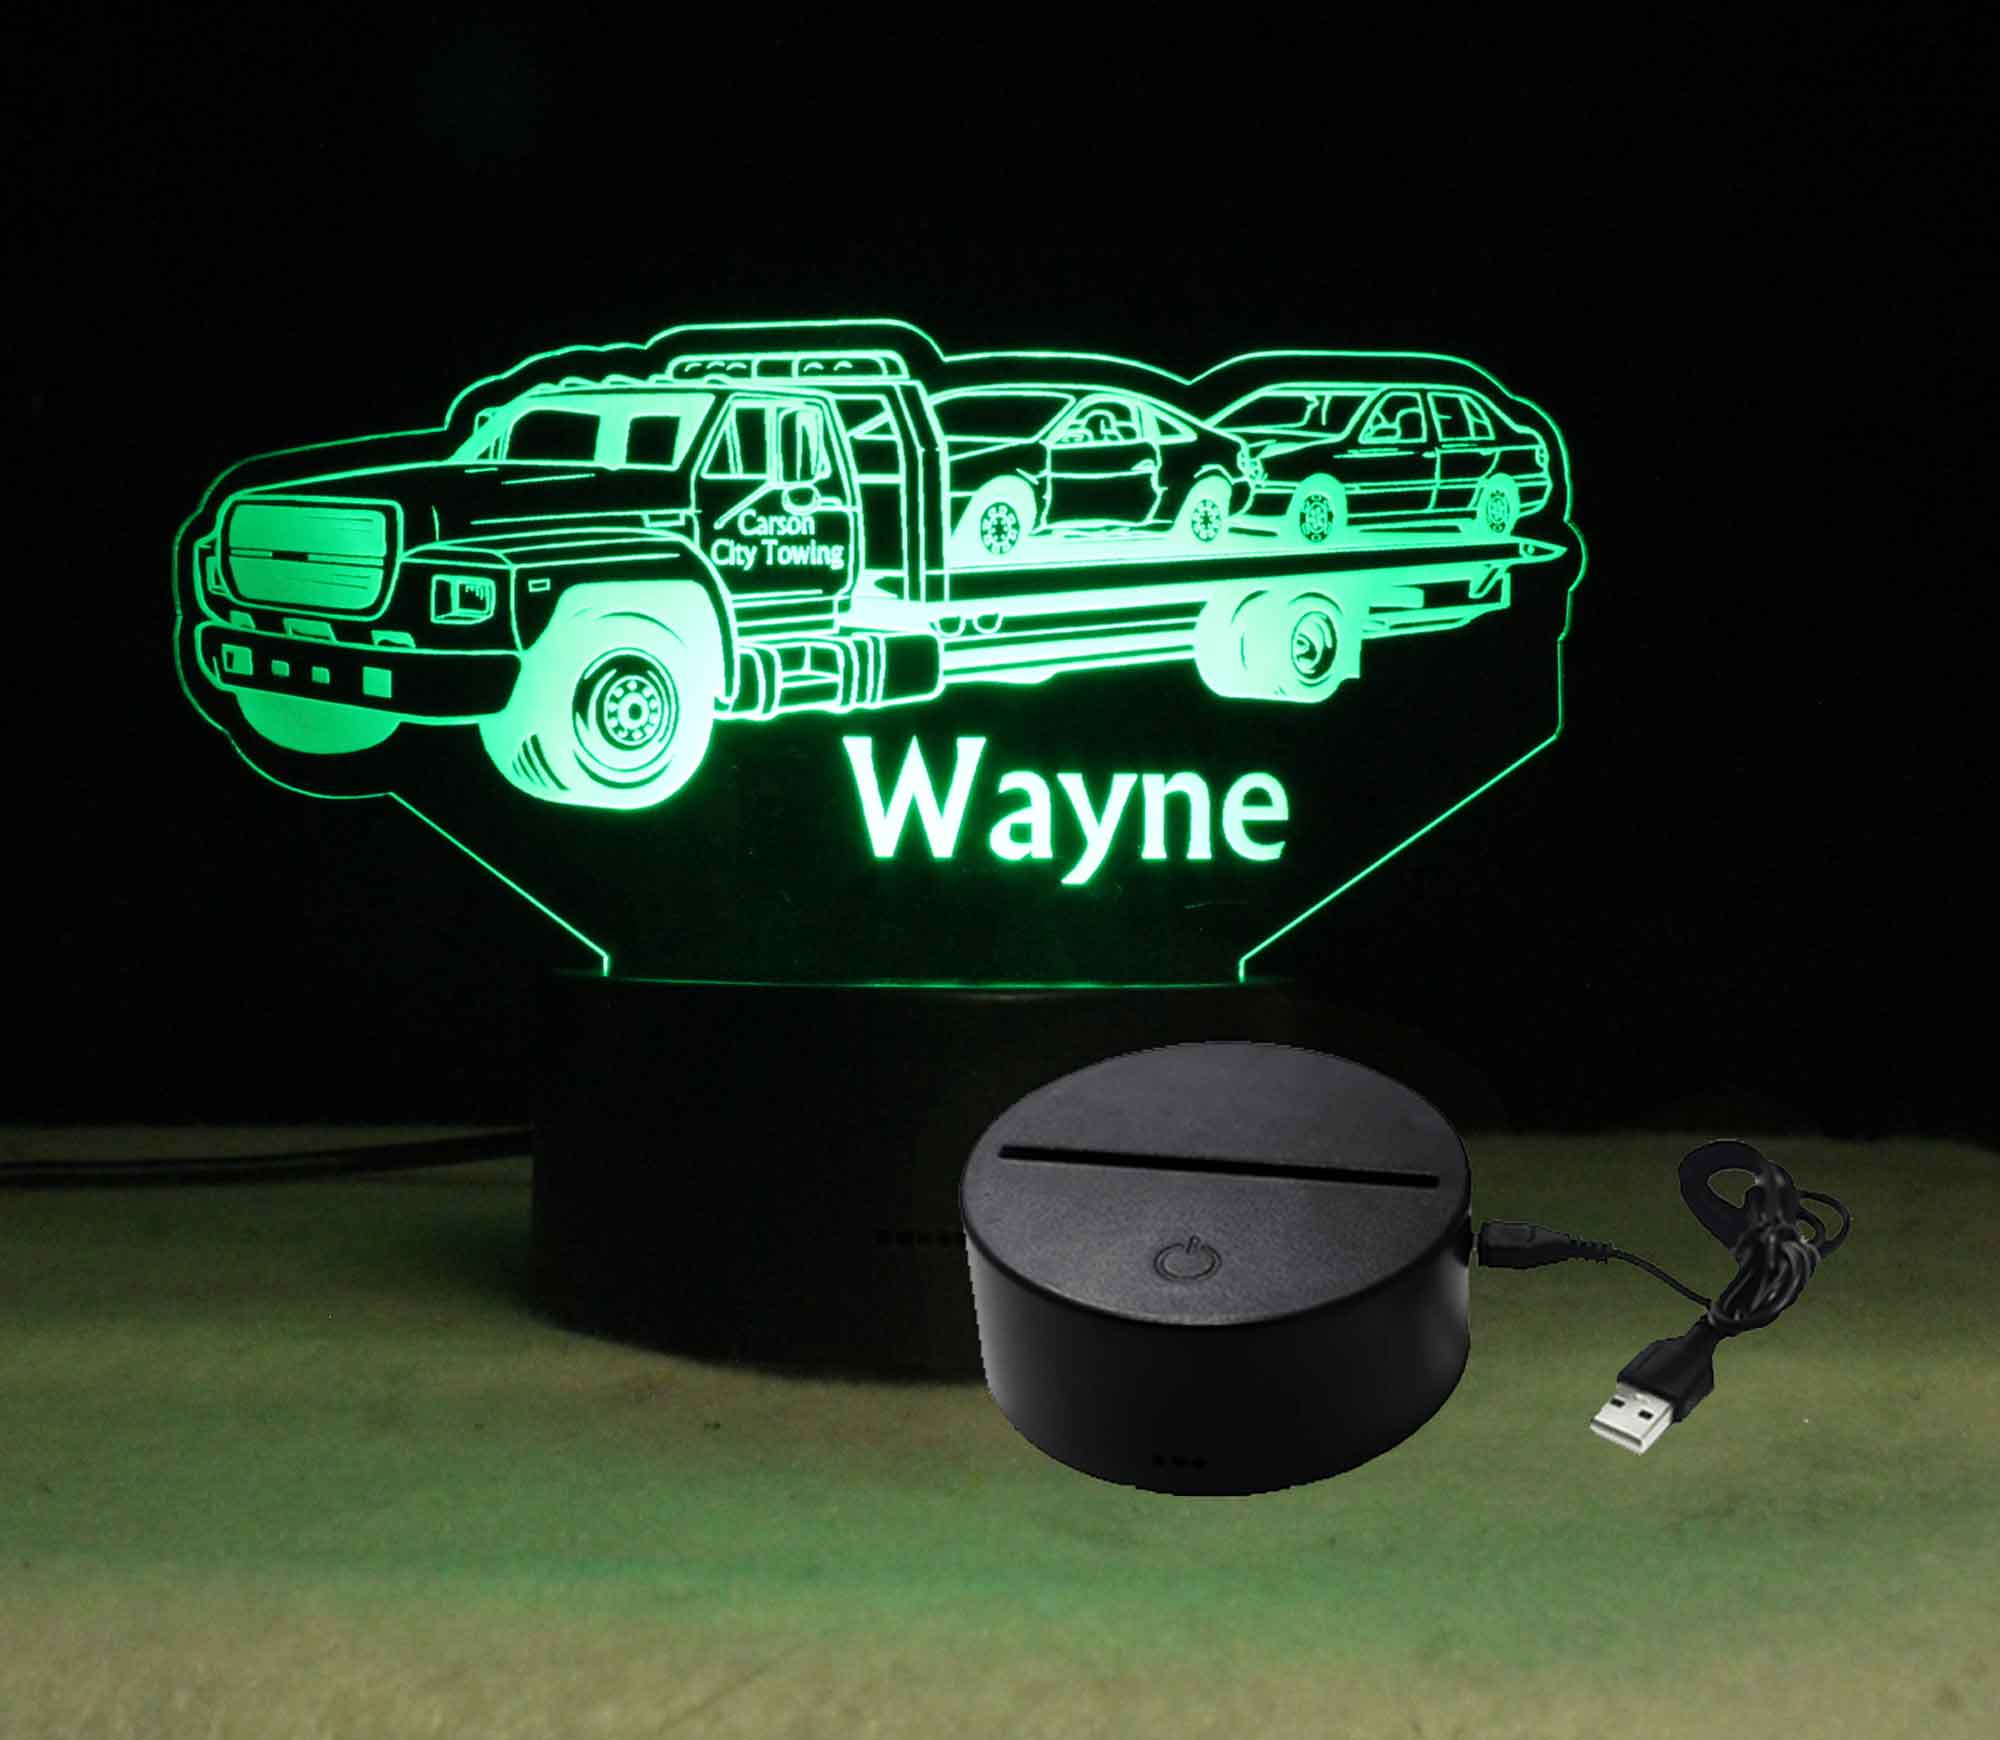 Personalized Tow Truck night light, USB/110V/240V battery operated